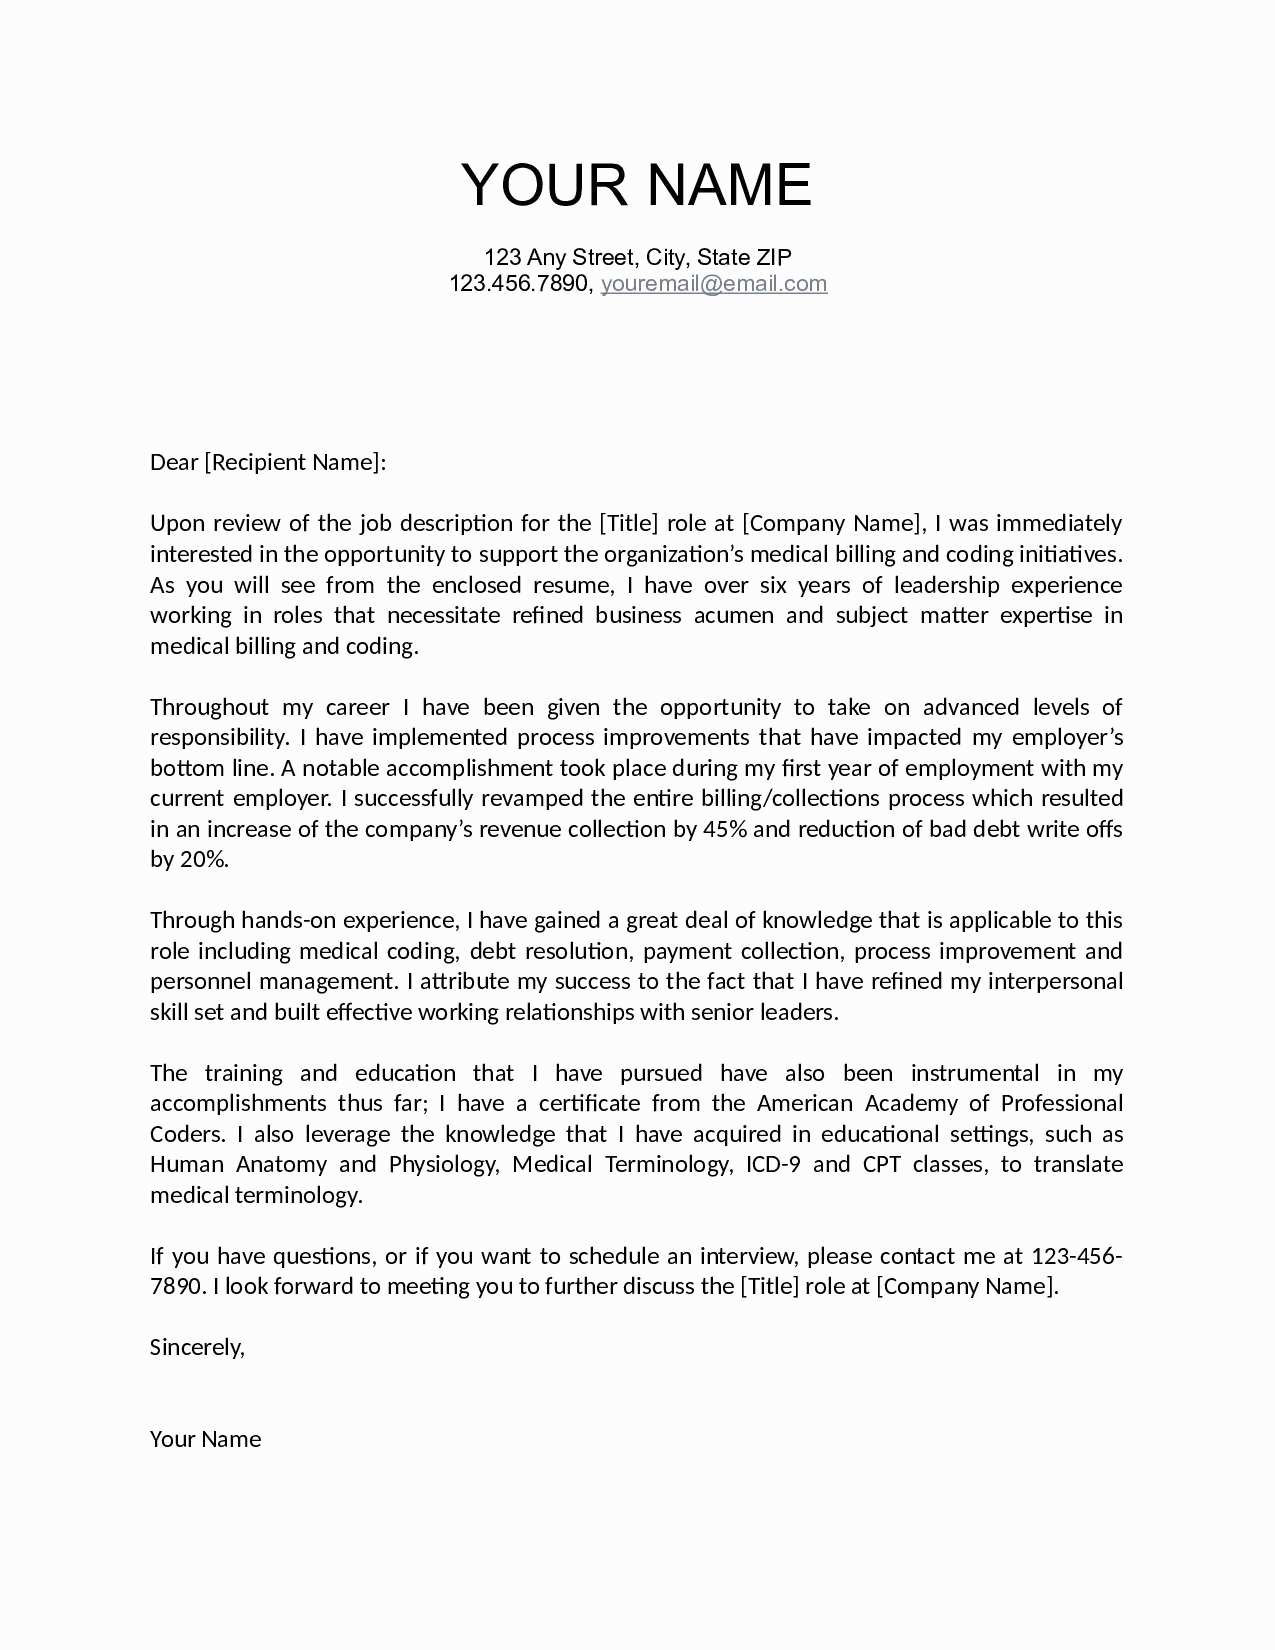 Marketing Letter Template - Beautiful Resume and Cover Letter Template